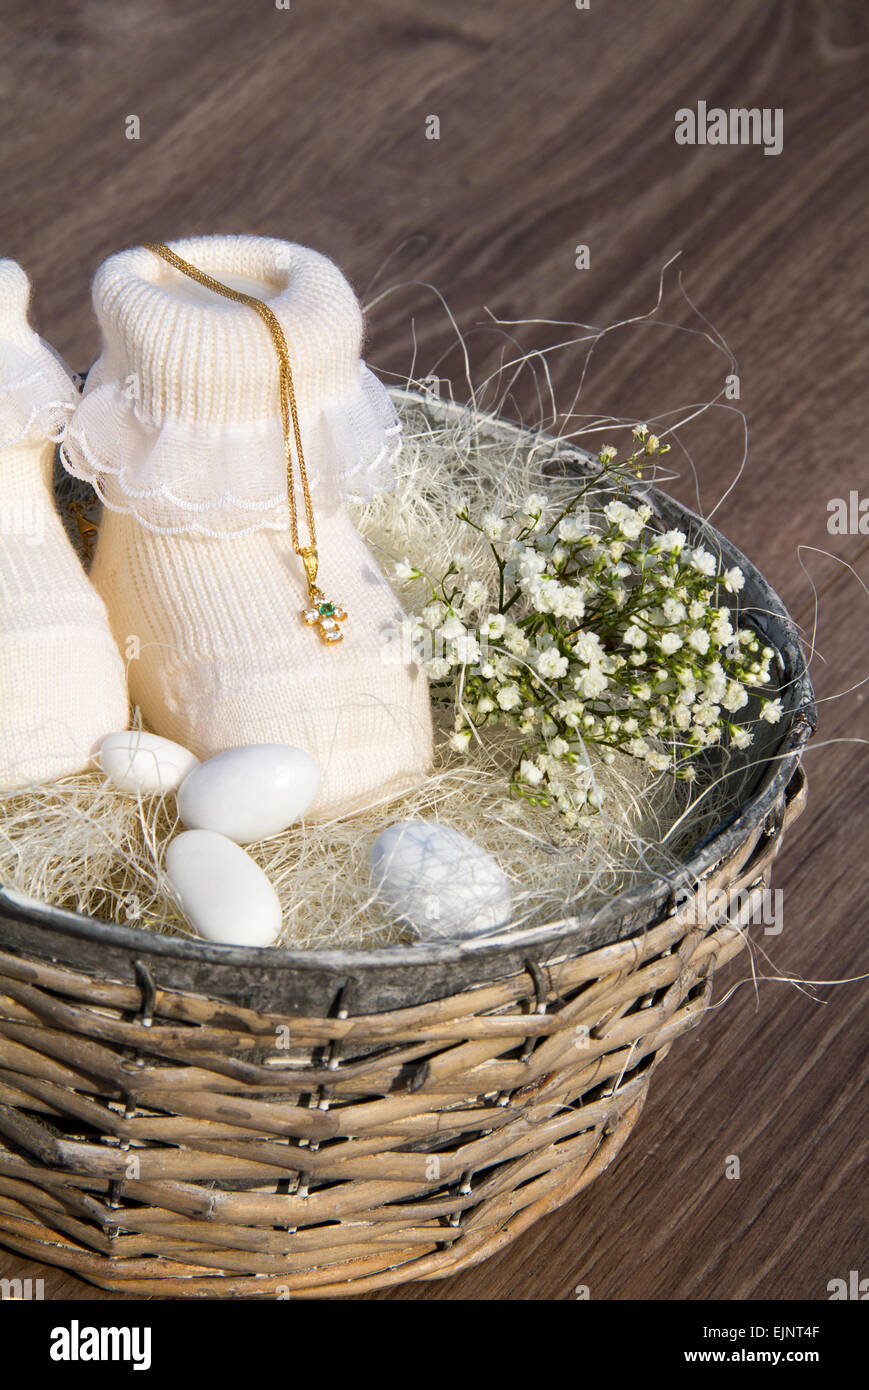 background for new born or baptism with little cross - Stock Image